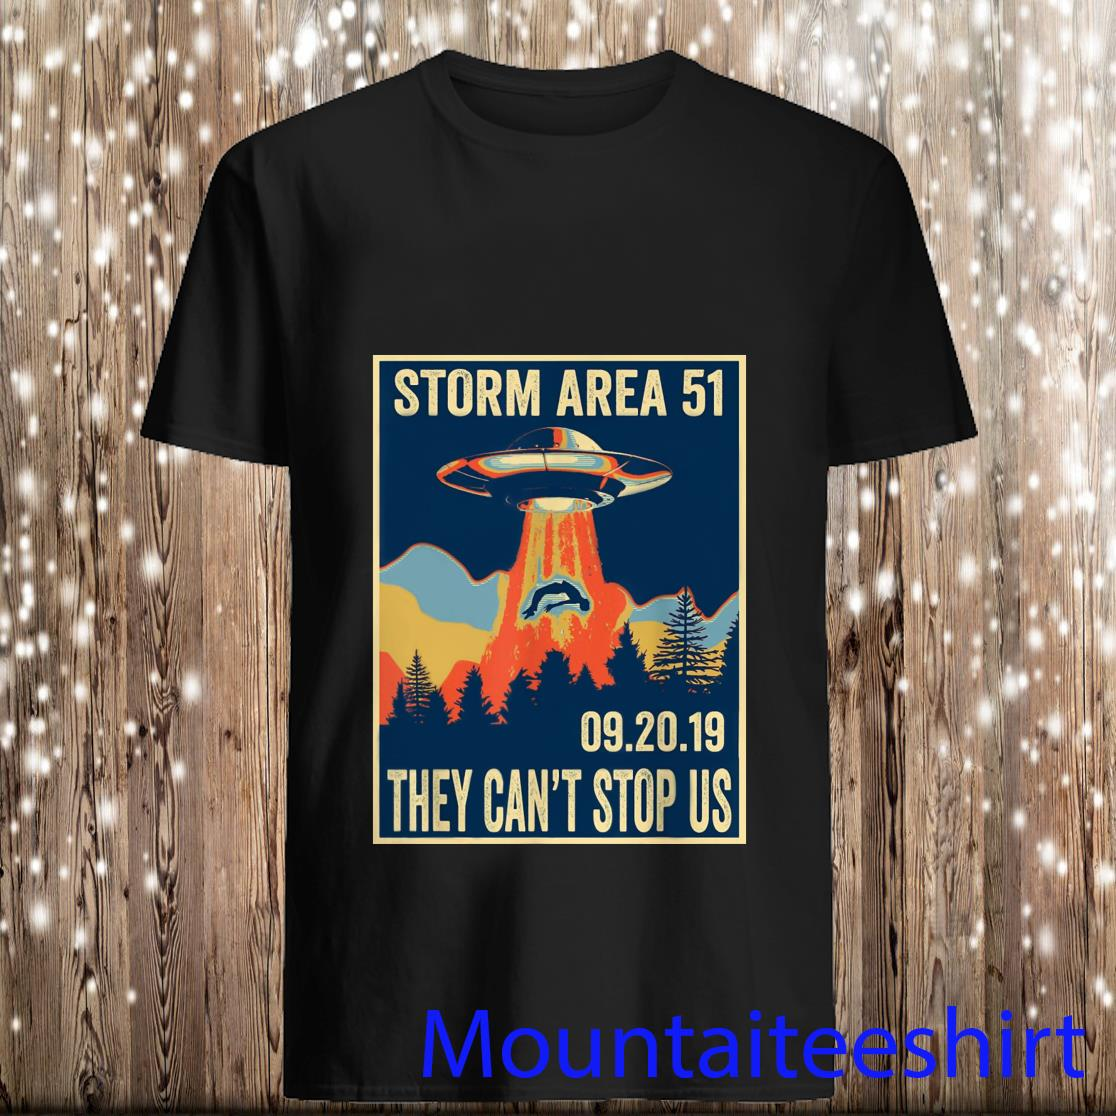 Storm Area 51 They Can_t Stop Us 09.20.19 Shirt